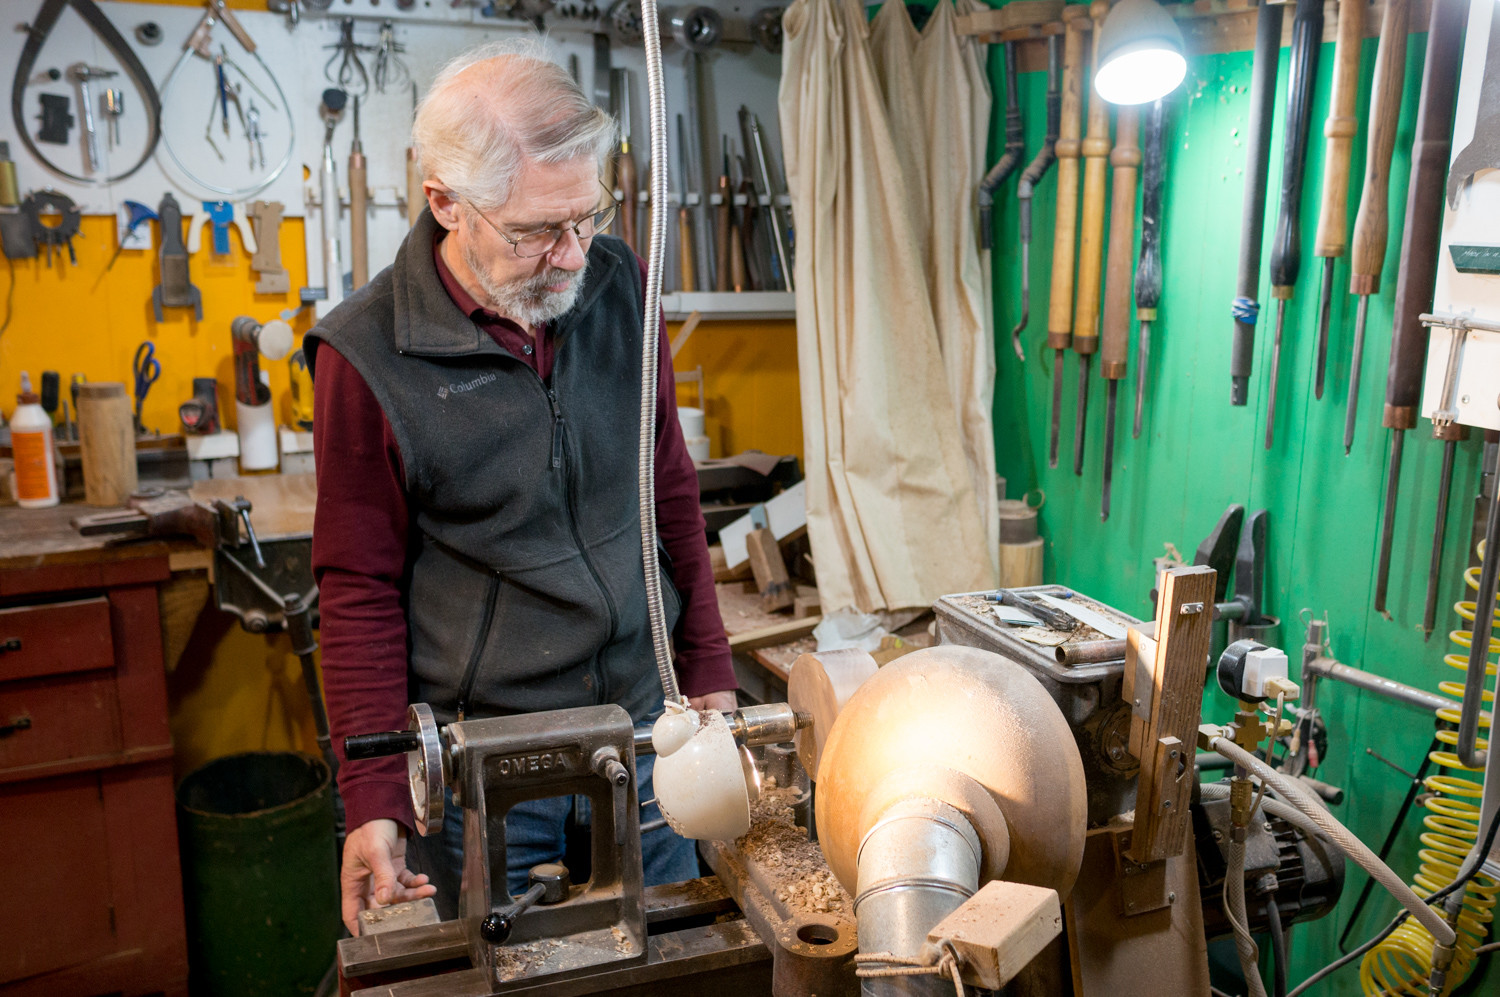 Ivan Braun prepares his lathe in the basement of his home. A lathe works by spinning a block of wood at a high speed while a woodturner applies a chisel to shape the wood. Braun is a professional woodturner who makes household objects that are more functional than ornate.